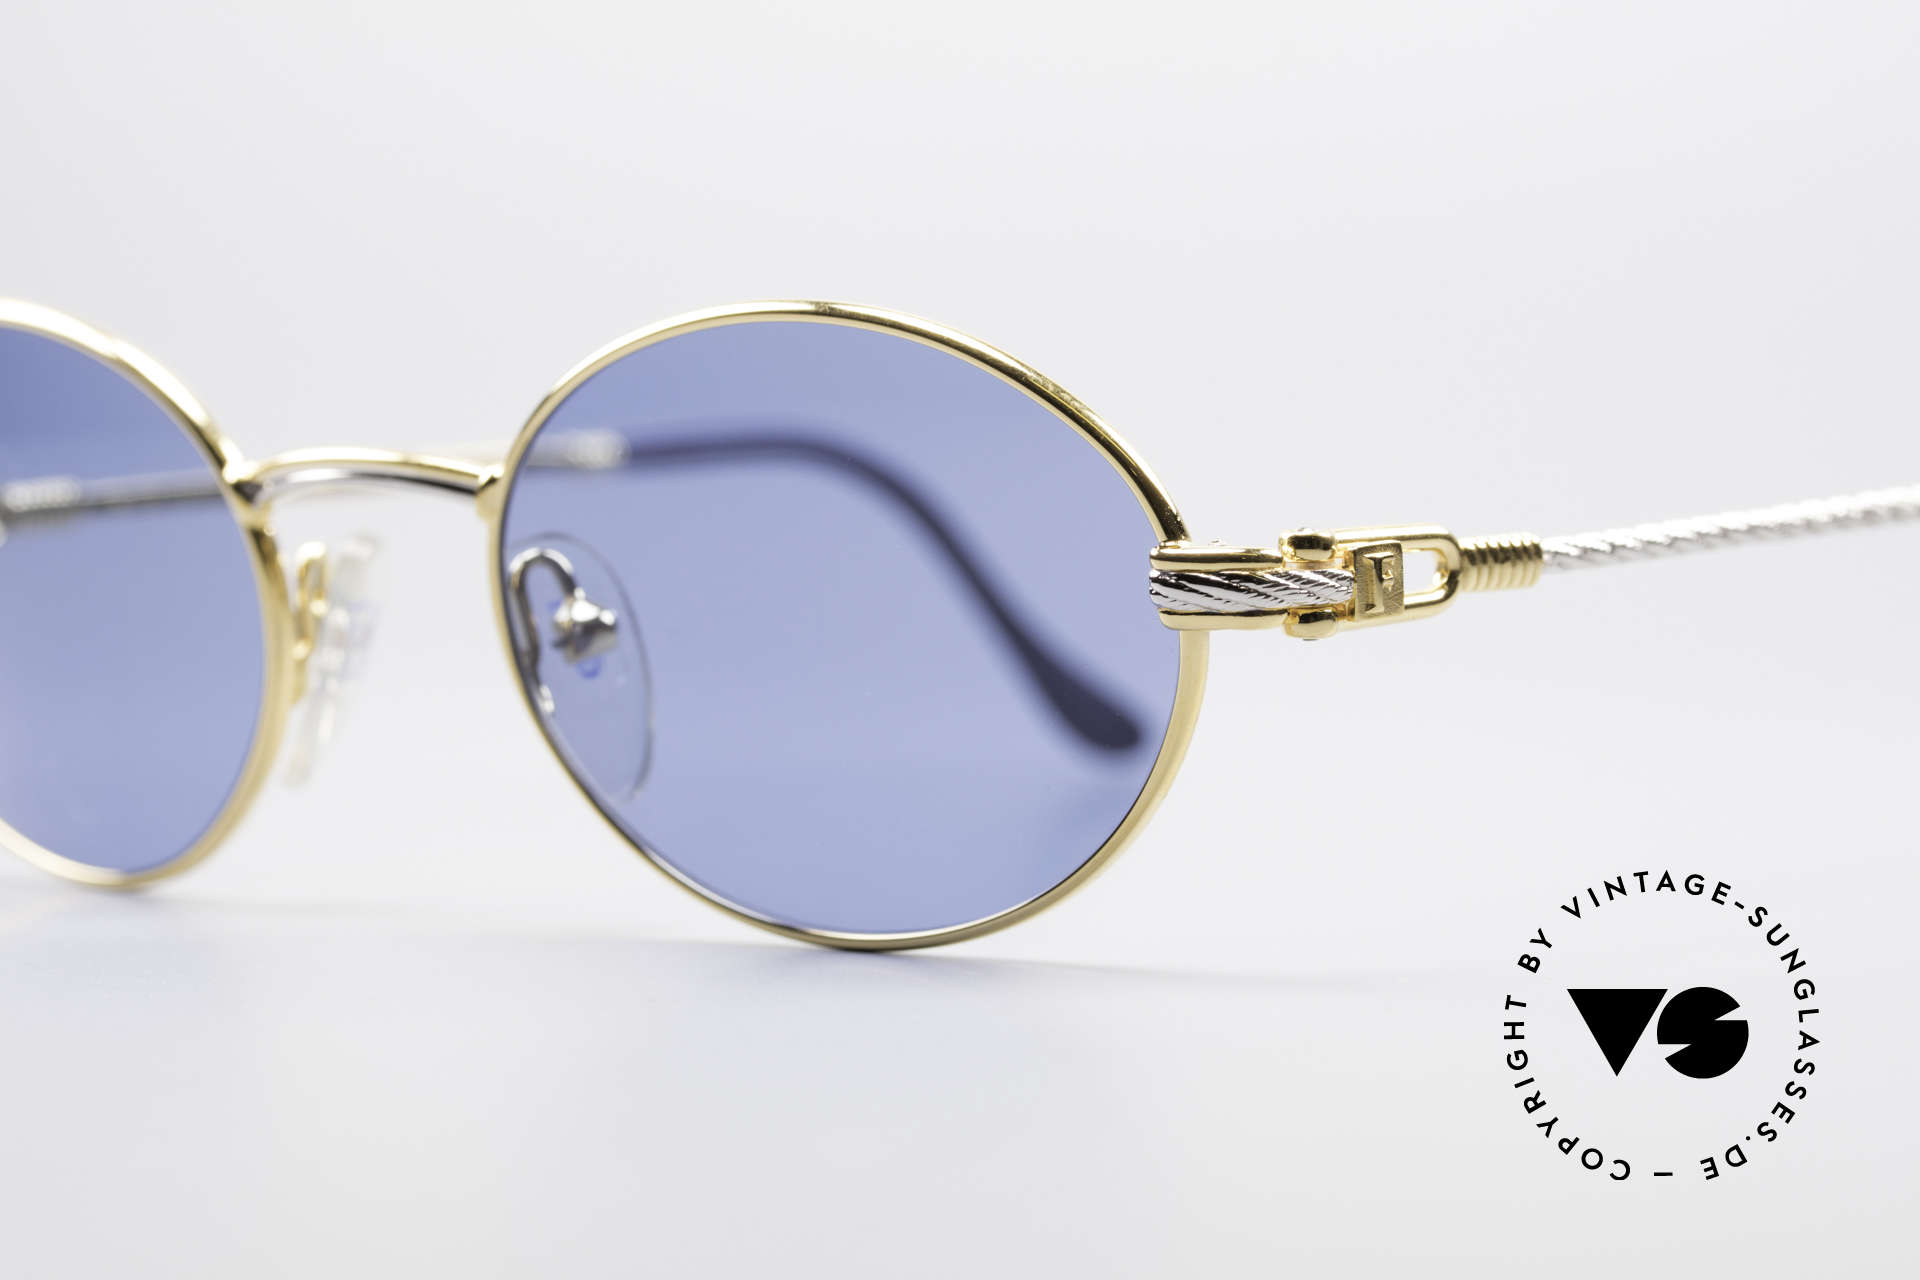 Fred Ketch Oval Luxury Sailing Sunglasses, gold-plated frame; temples are twisted like a hawser, Made for Men and Women